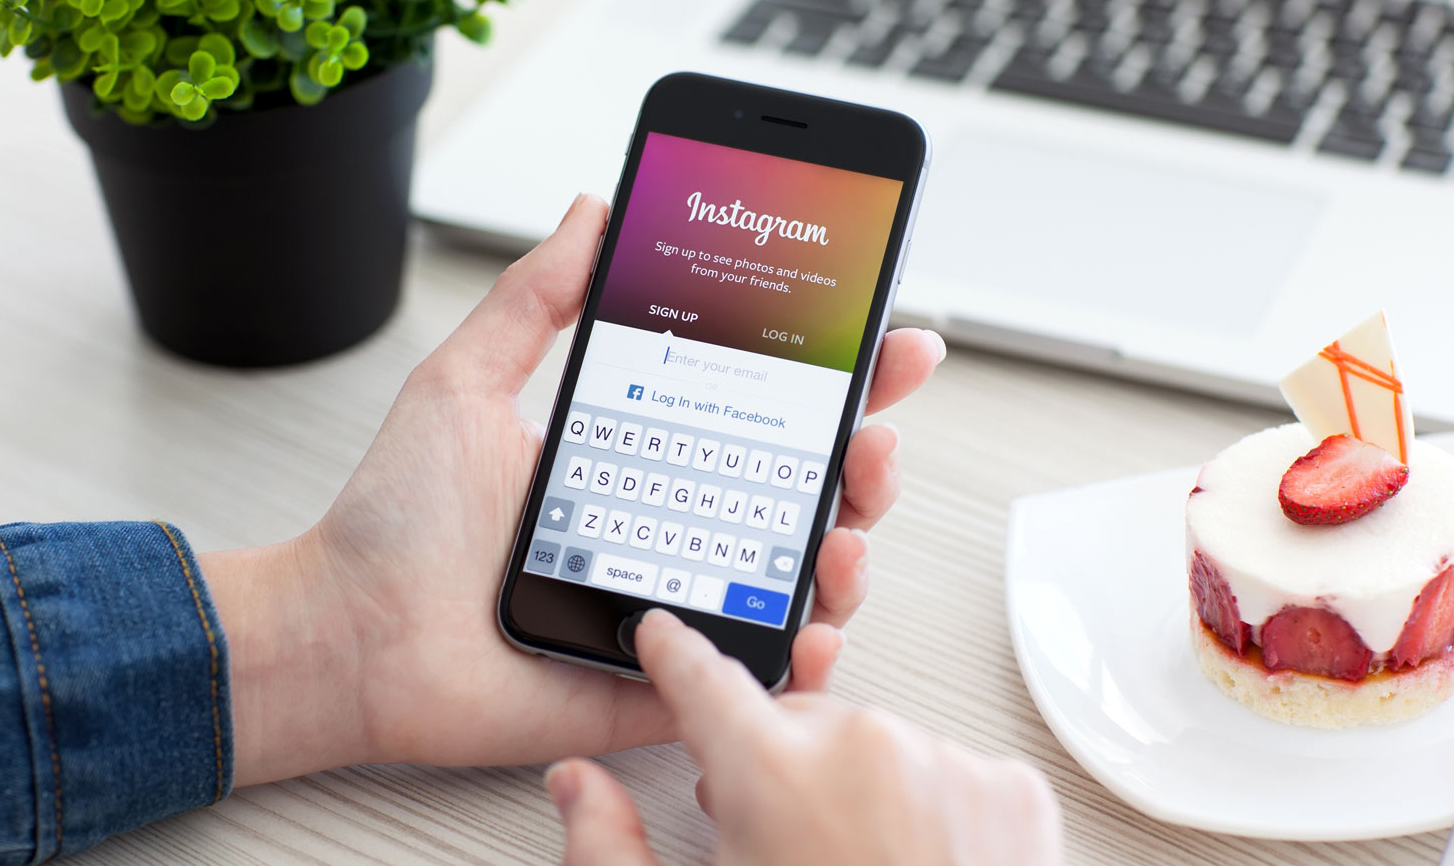 Woman holding iPhone 6 Space Gray with service Instagram